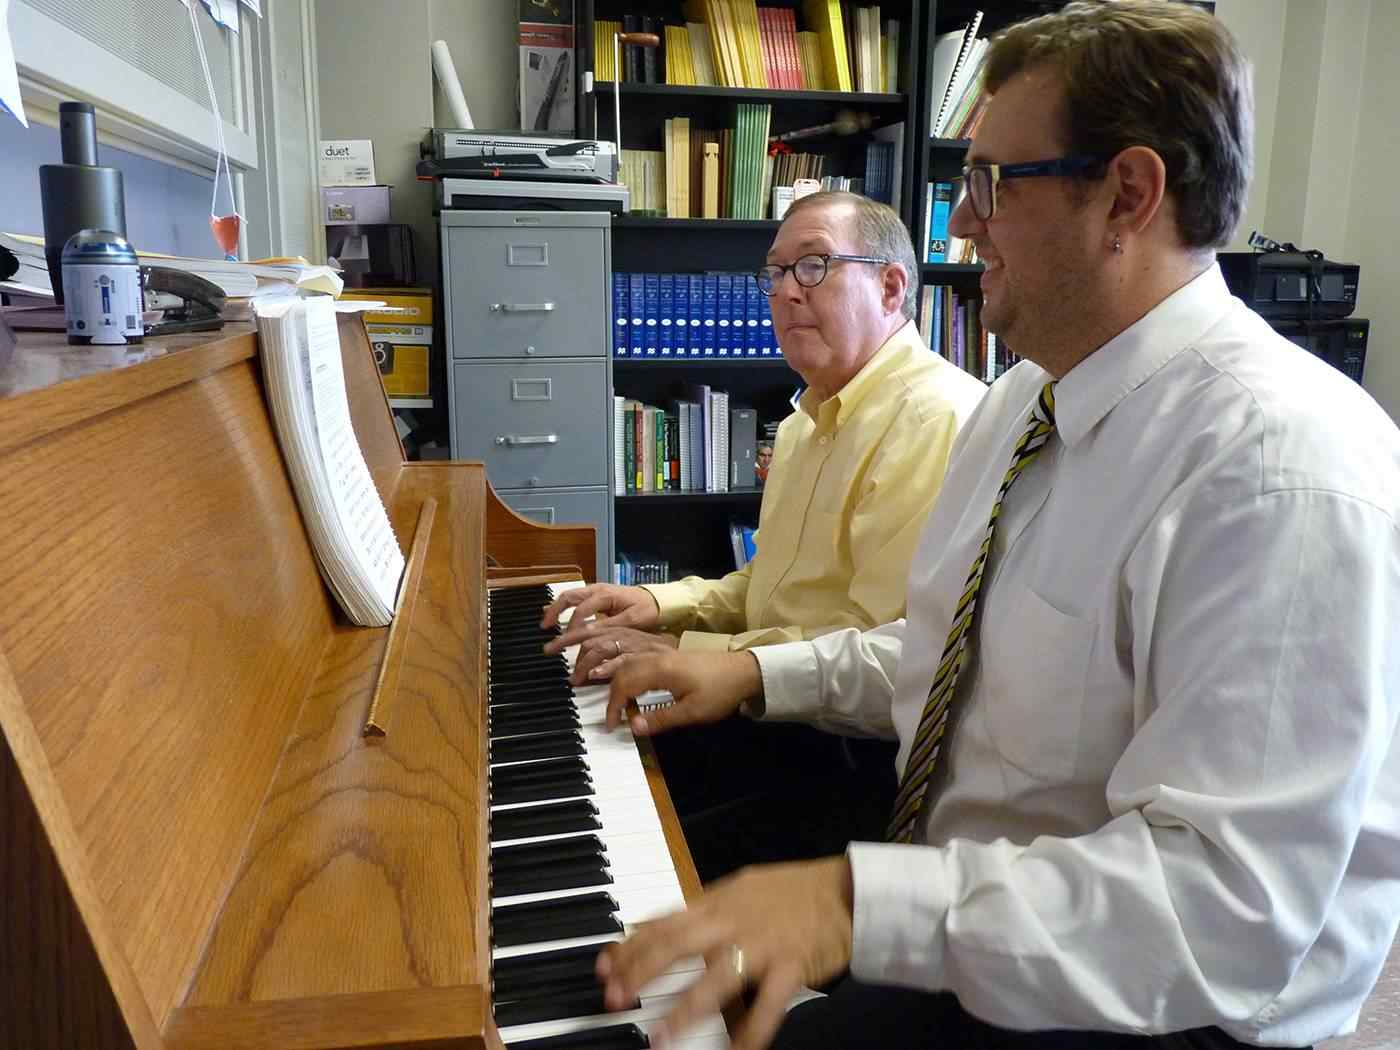 Professor teaching a student on the piano.